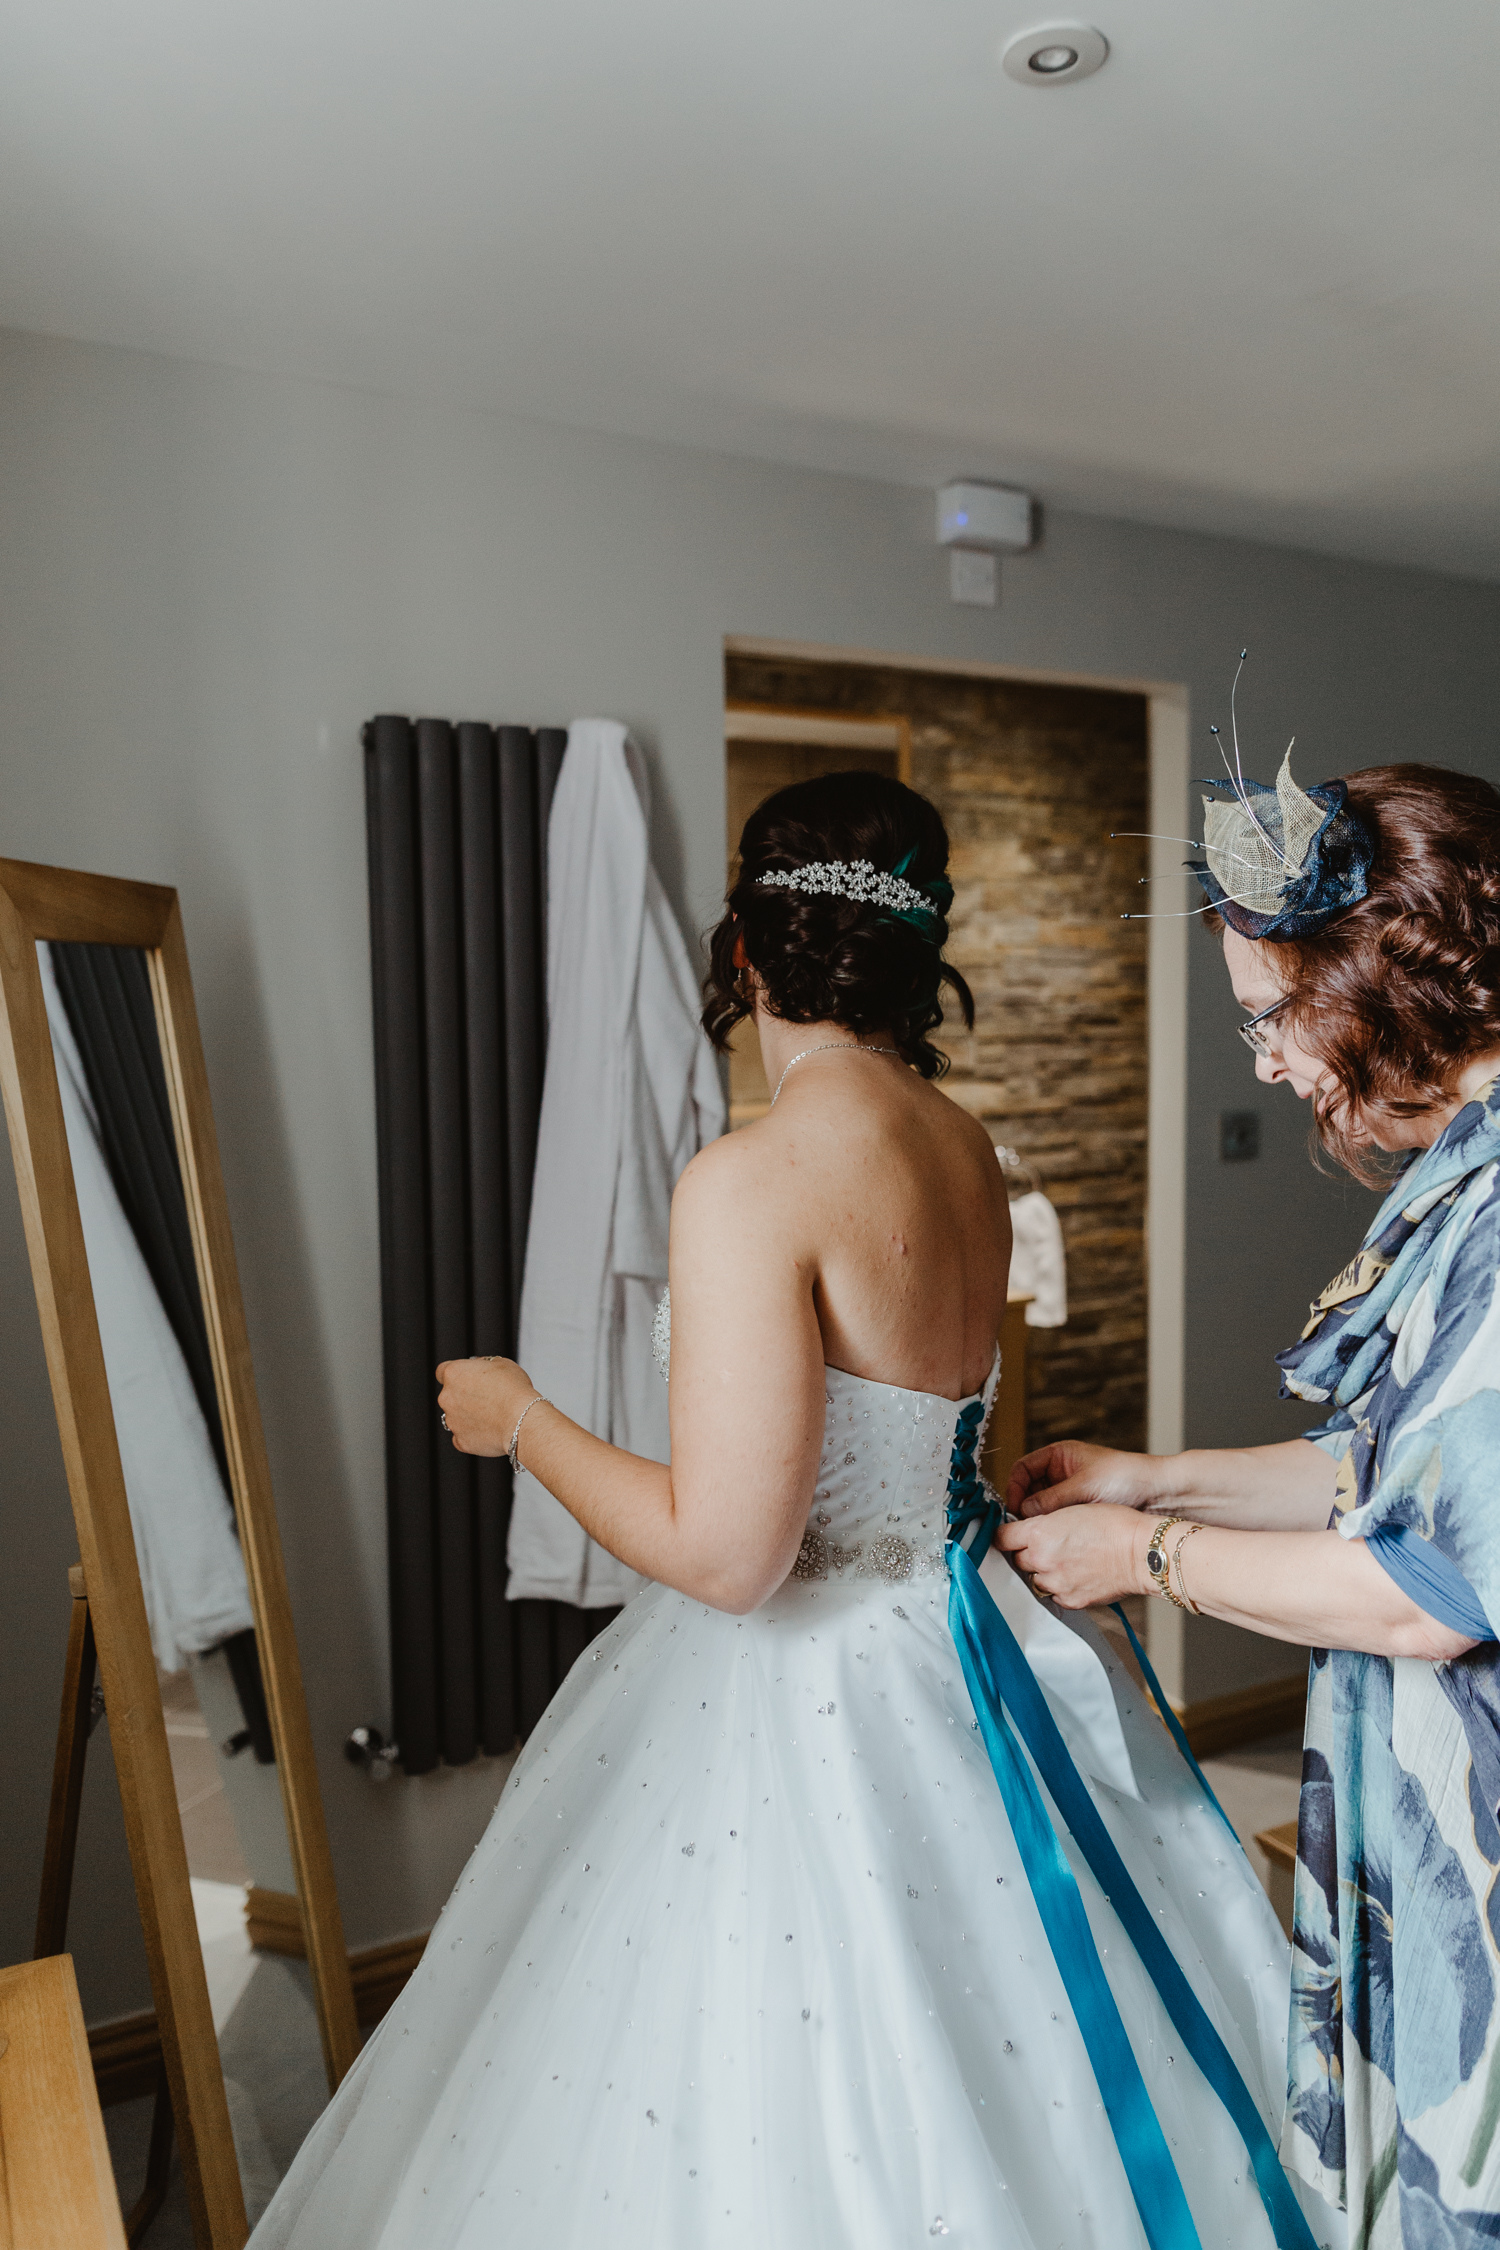 Stevie Jay photography - Unconventional Wedding at Storthes Hall Huddersfield - alternative wedding 100